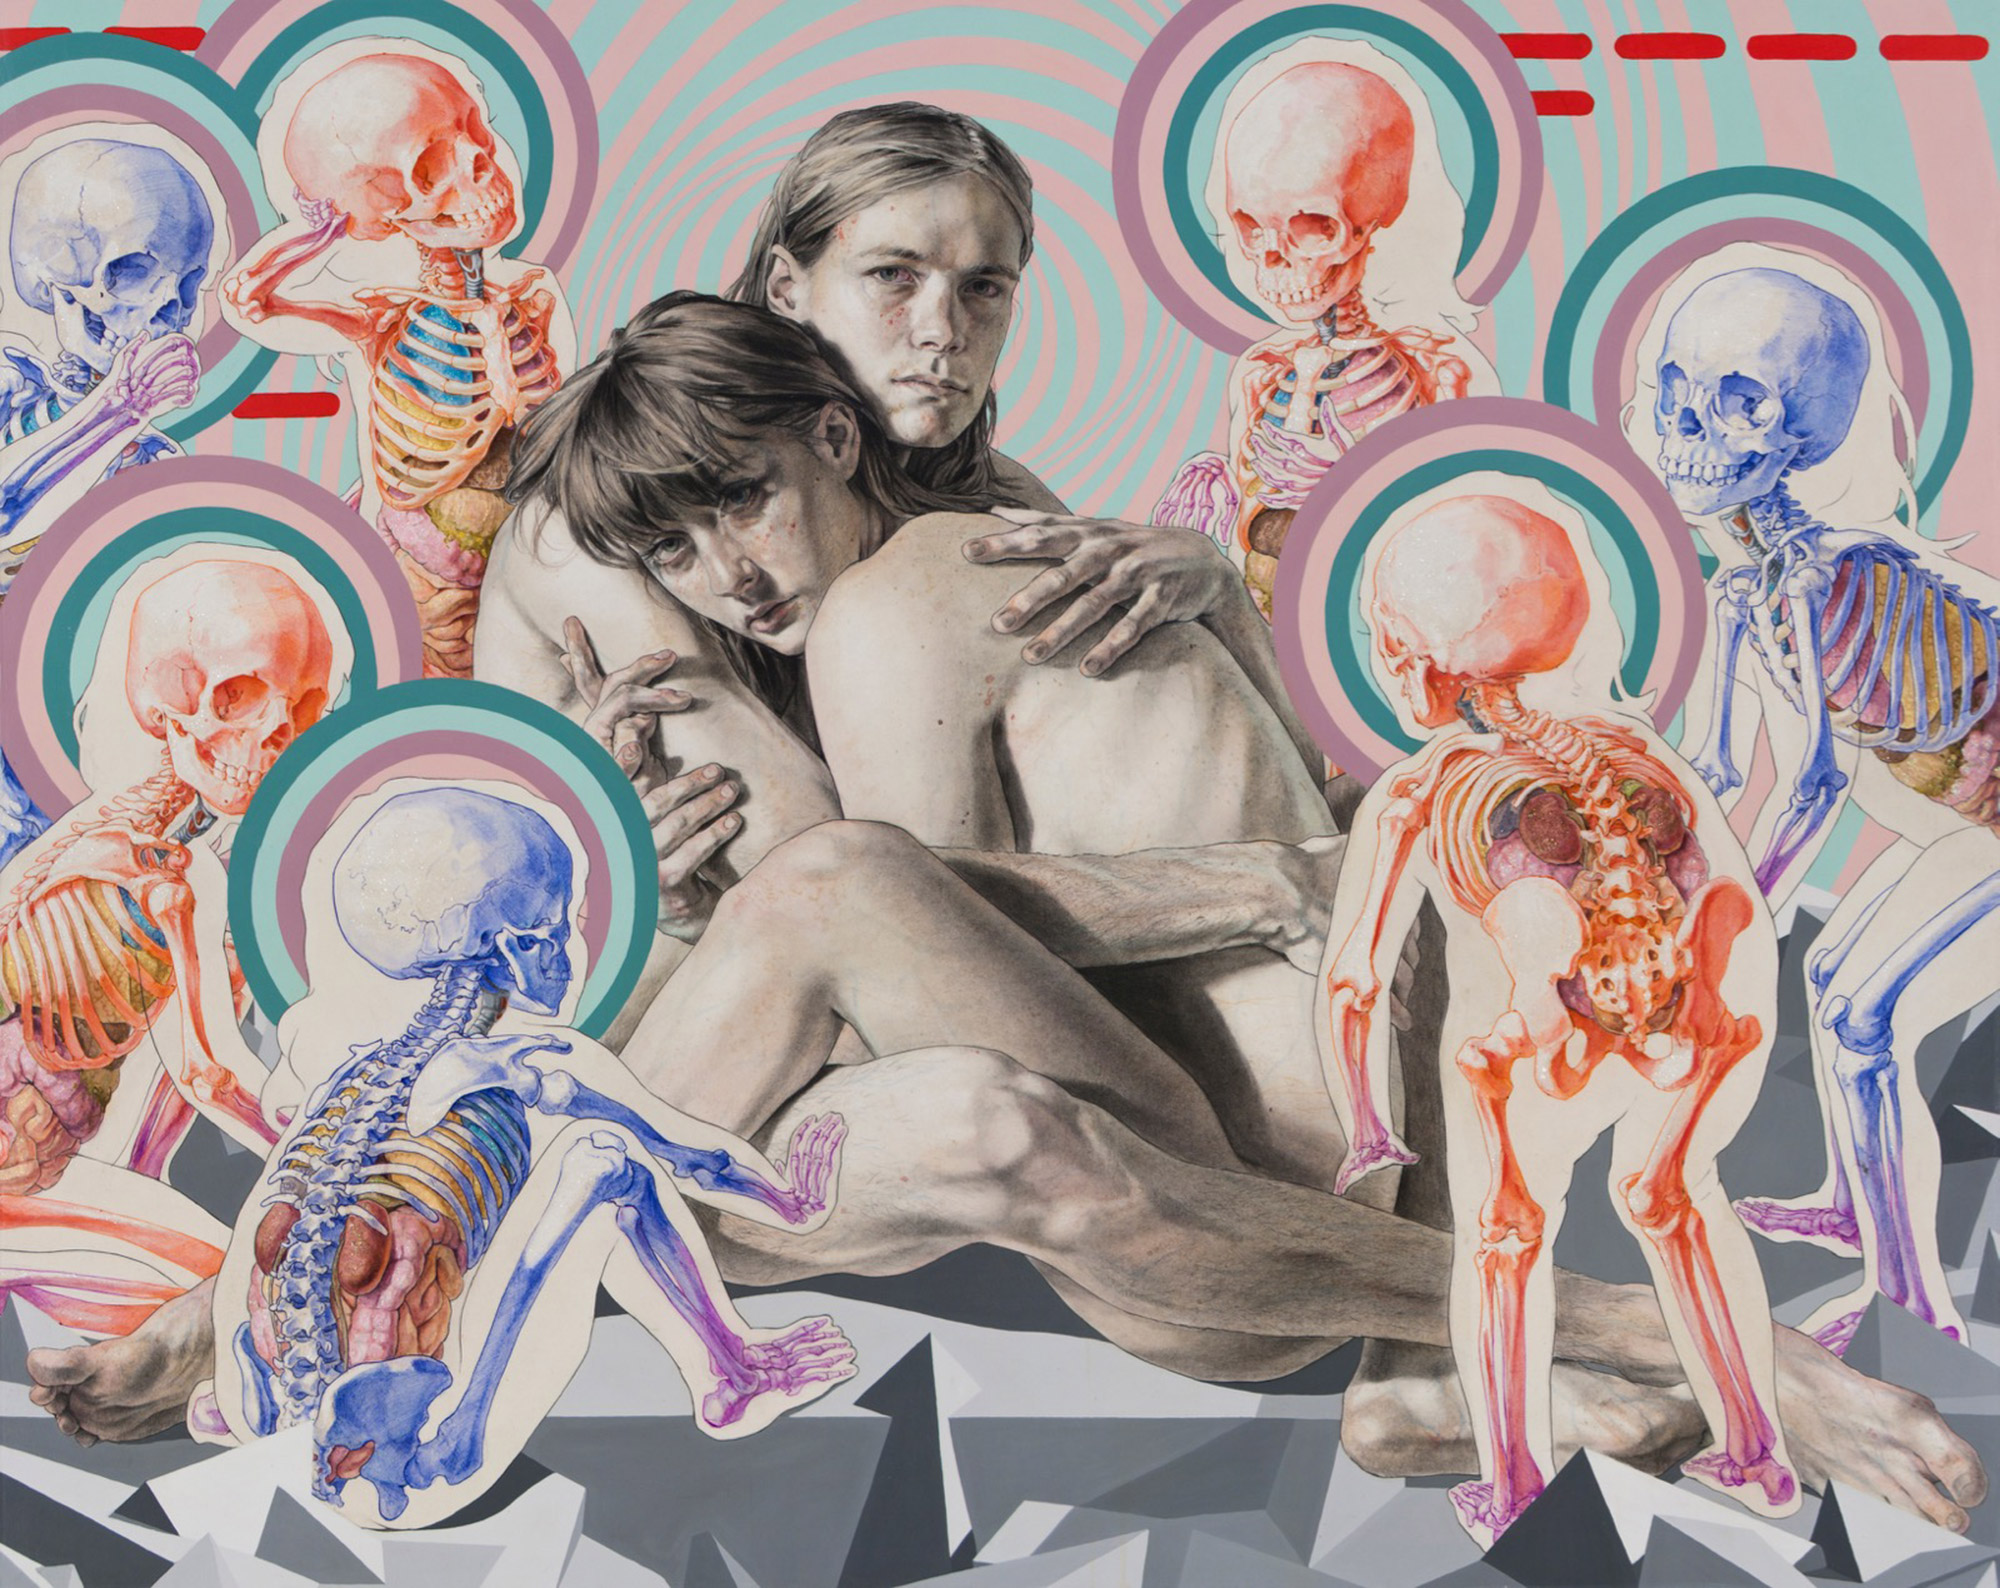 Shades of Comedy and Death: Hypnotic Drawings by Michael Reedy